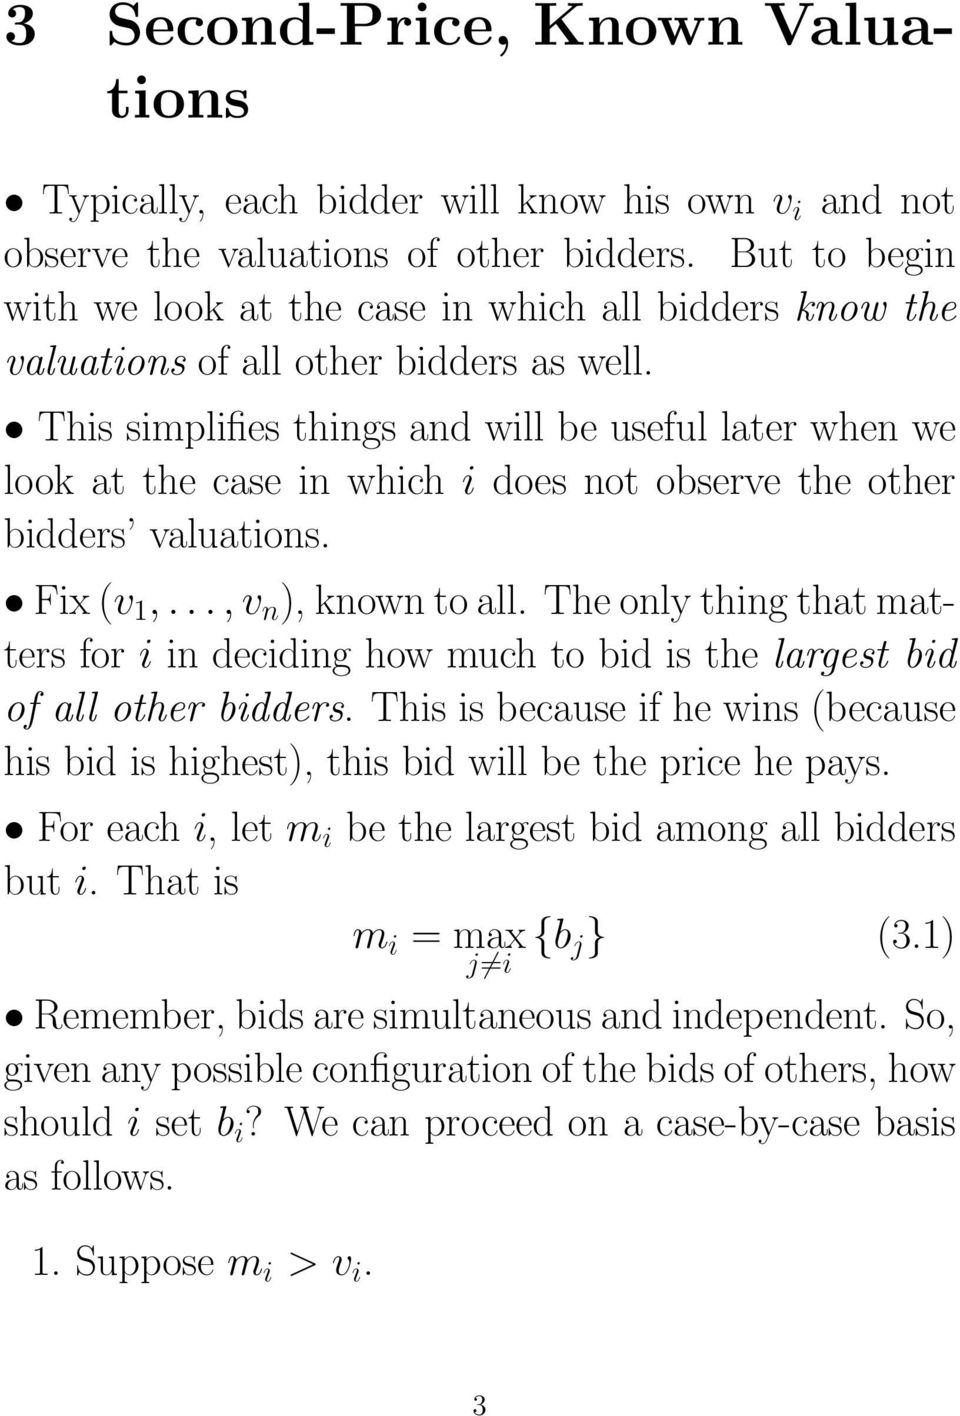 This simplifies things and will be useful later when we look at the case in which i does not observe the other bidders valuations. Fix (v 1,..., v n ), known to all.